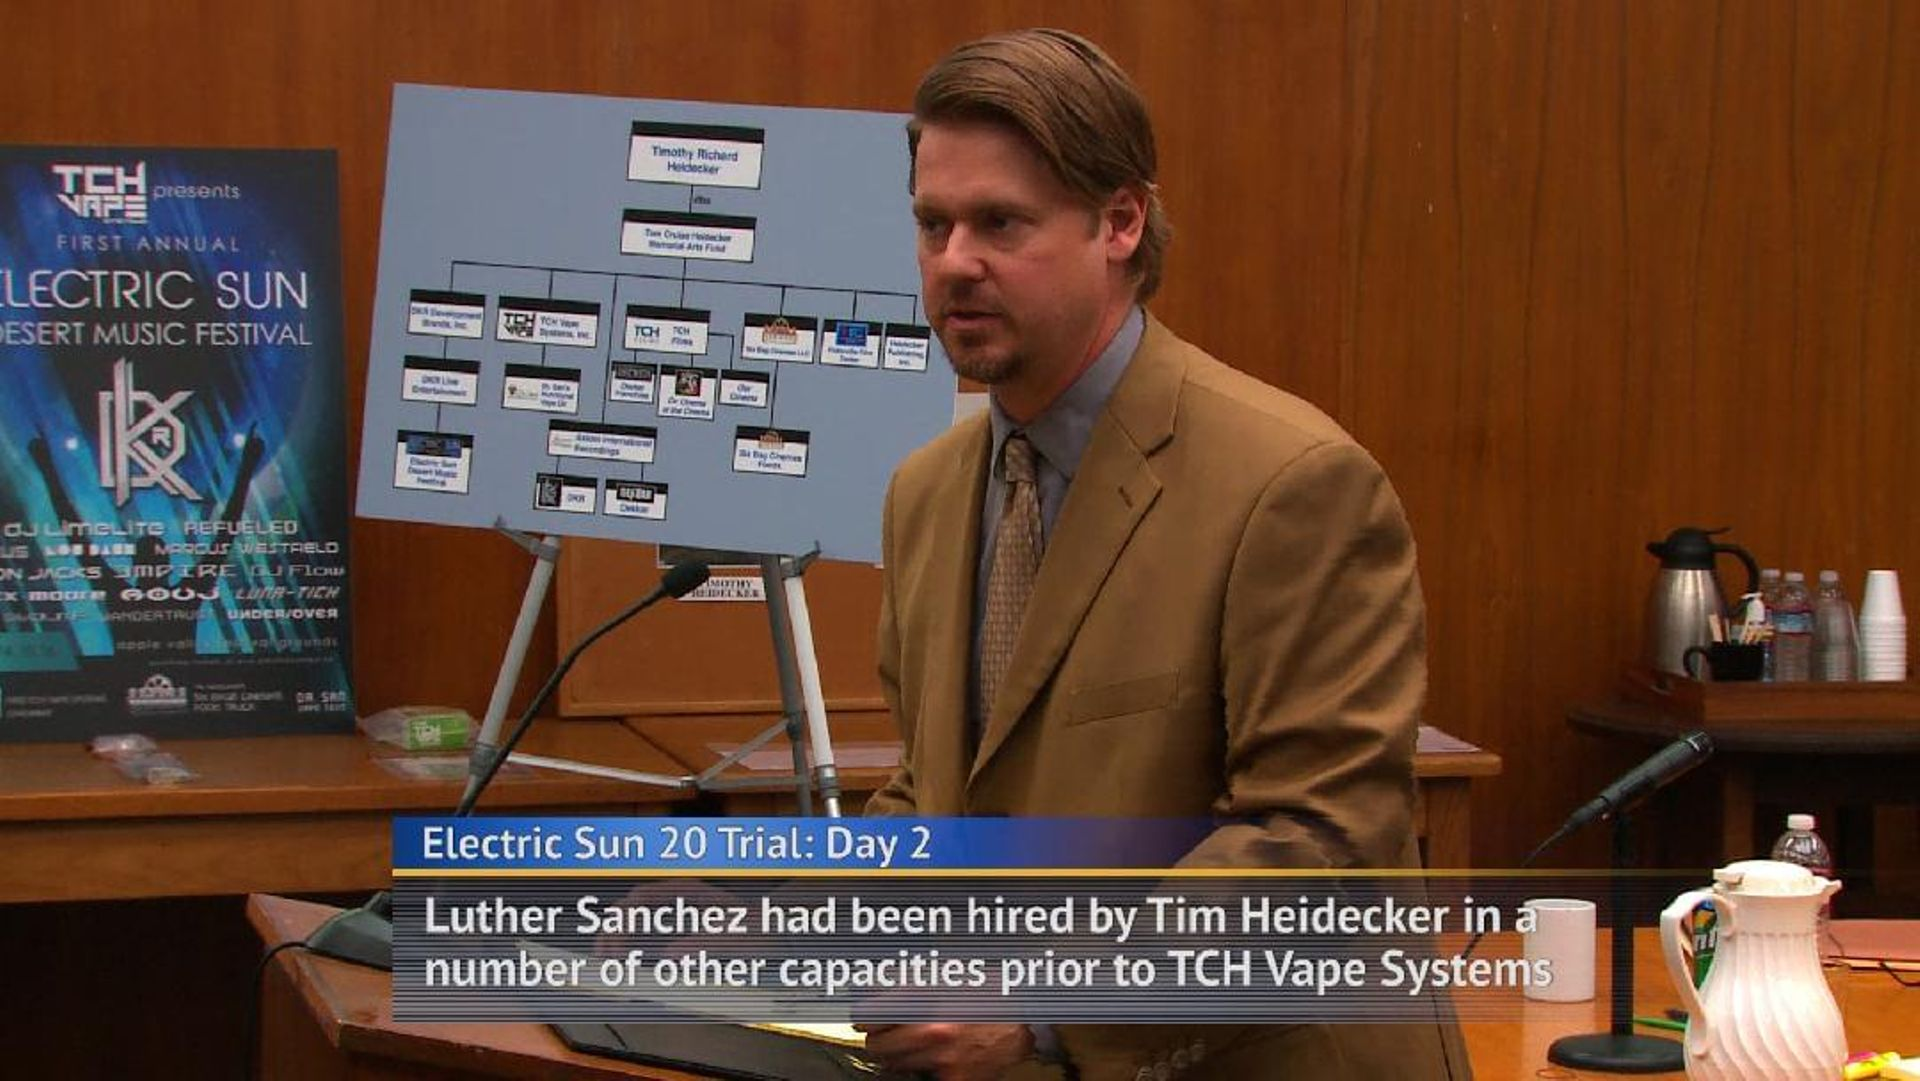 Tim Heidecker Trial - Highlights From Day 2